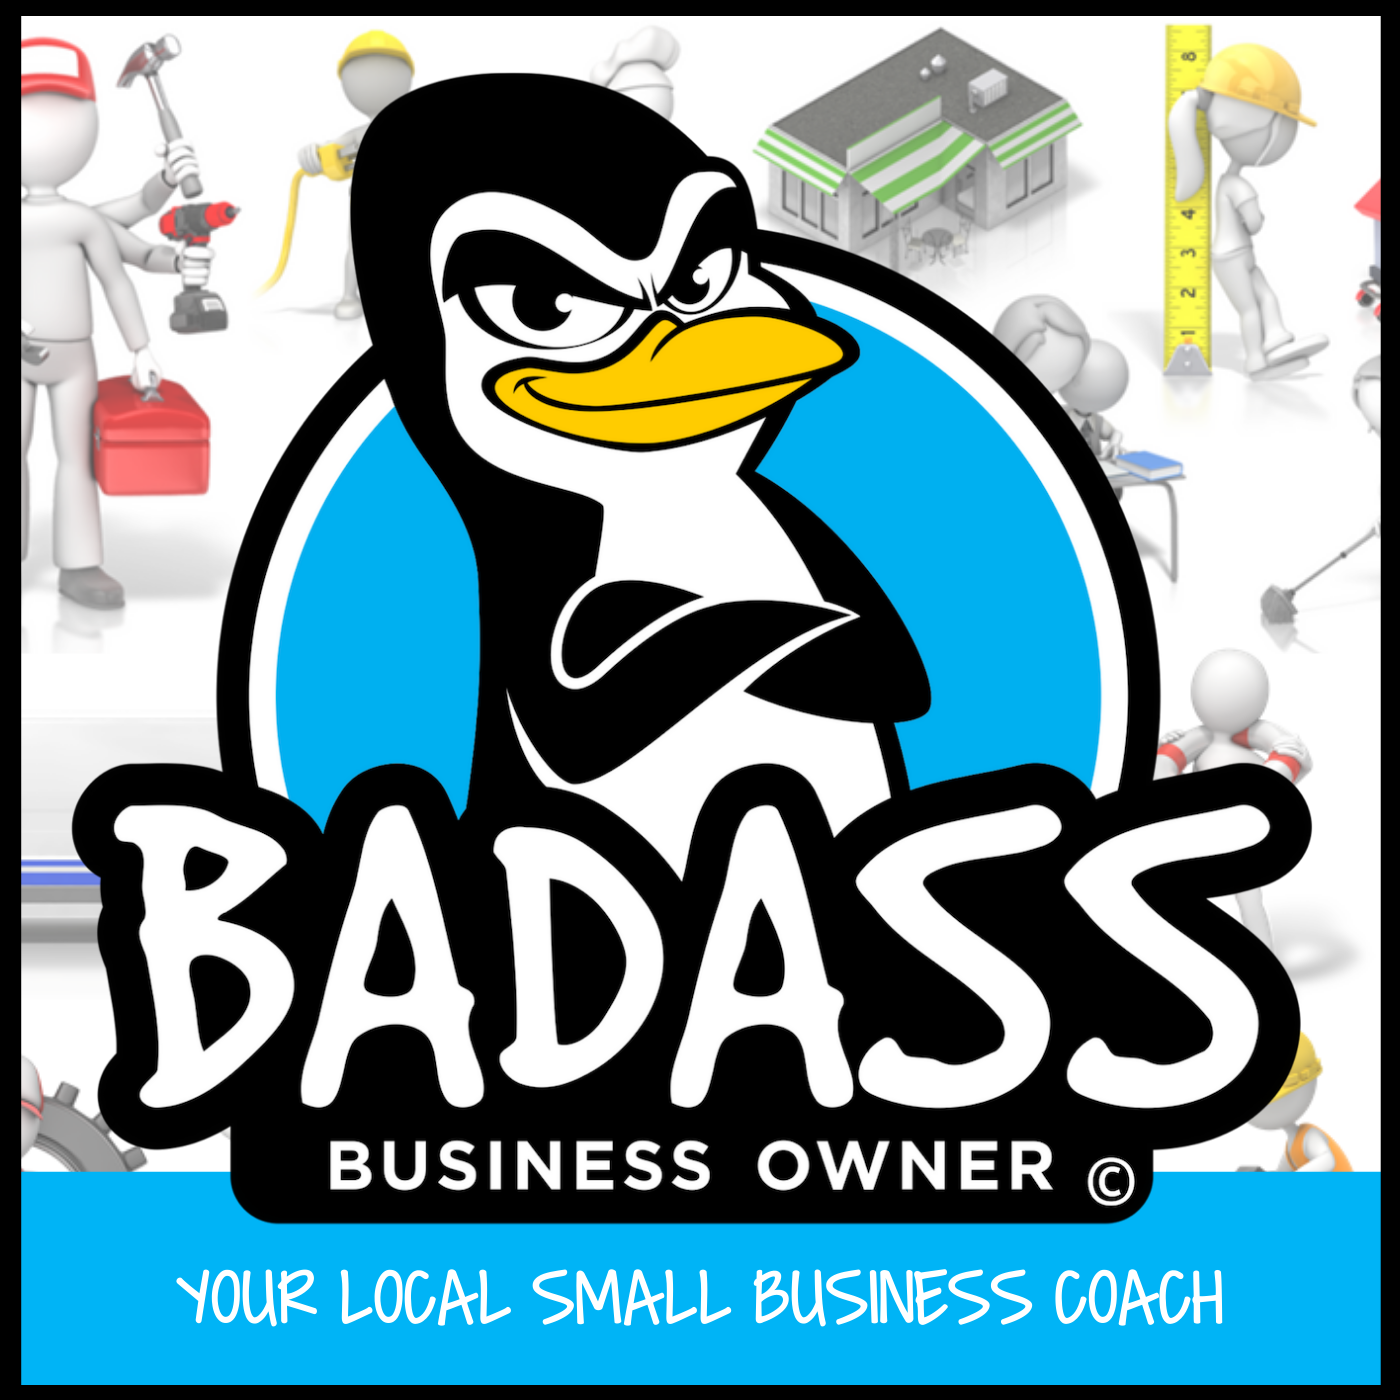 Badass Business Owners:  Local Small Businesses Serving their Communities